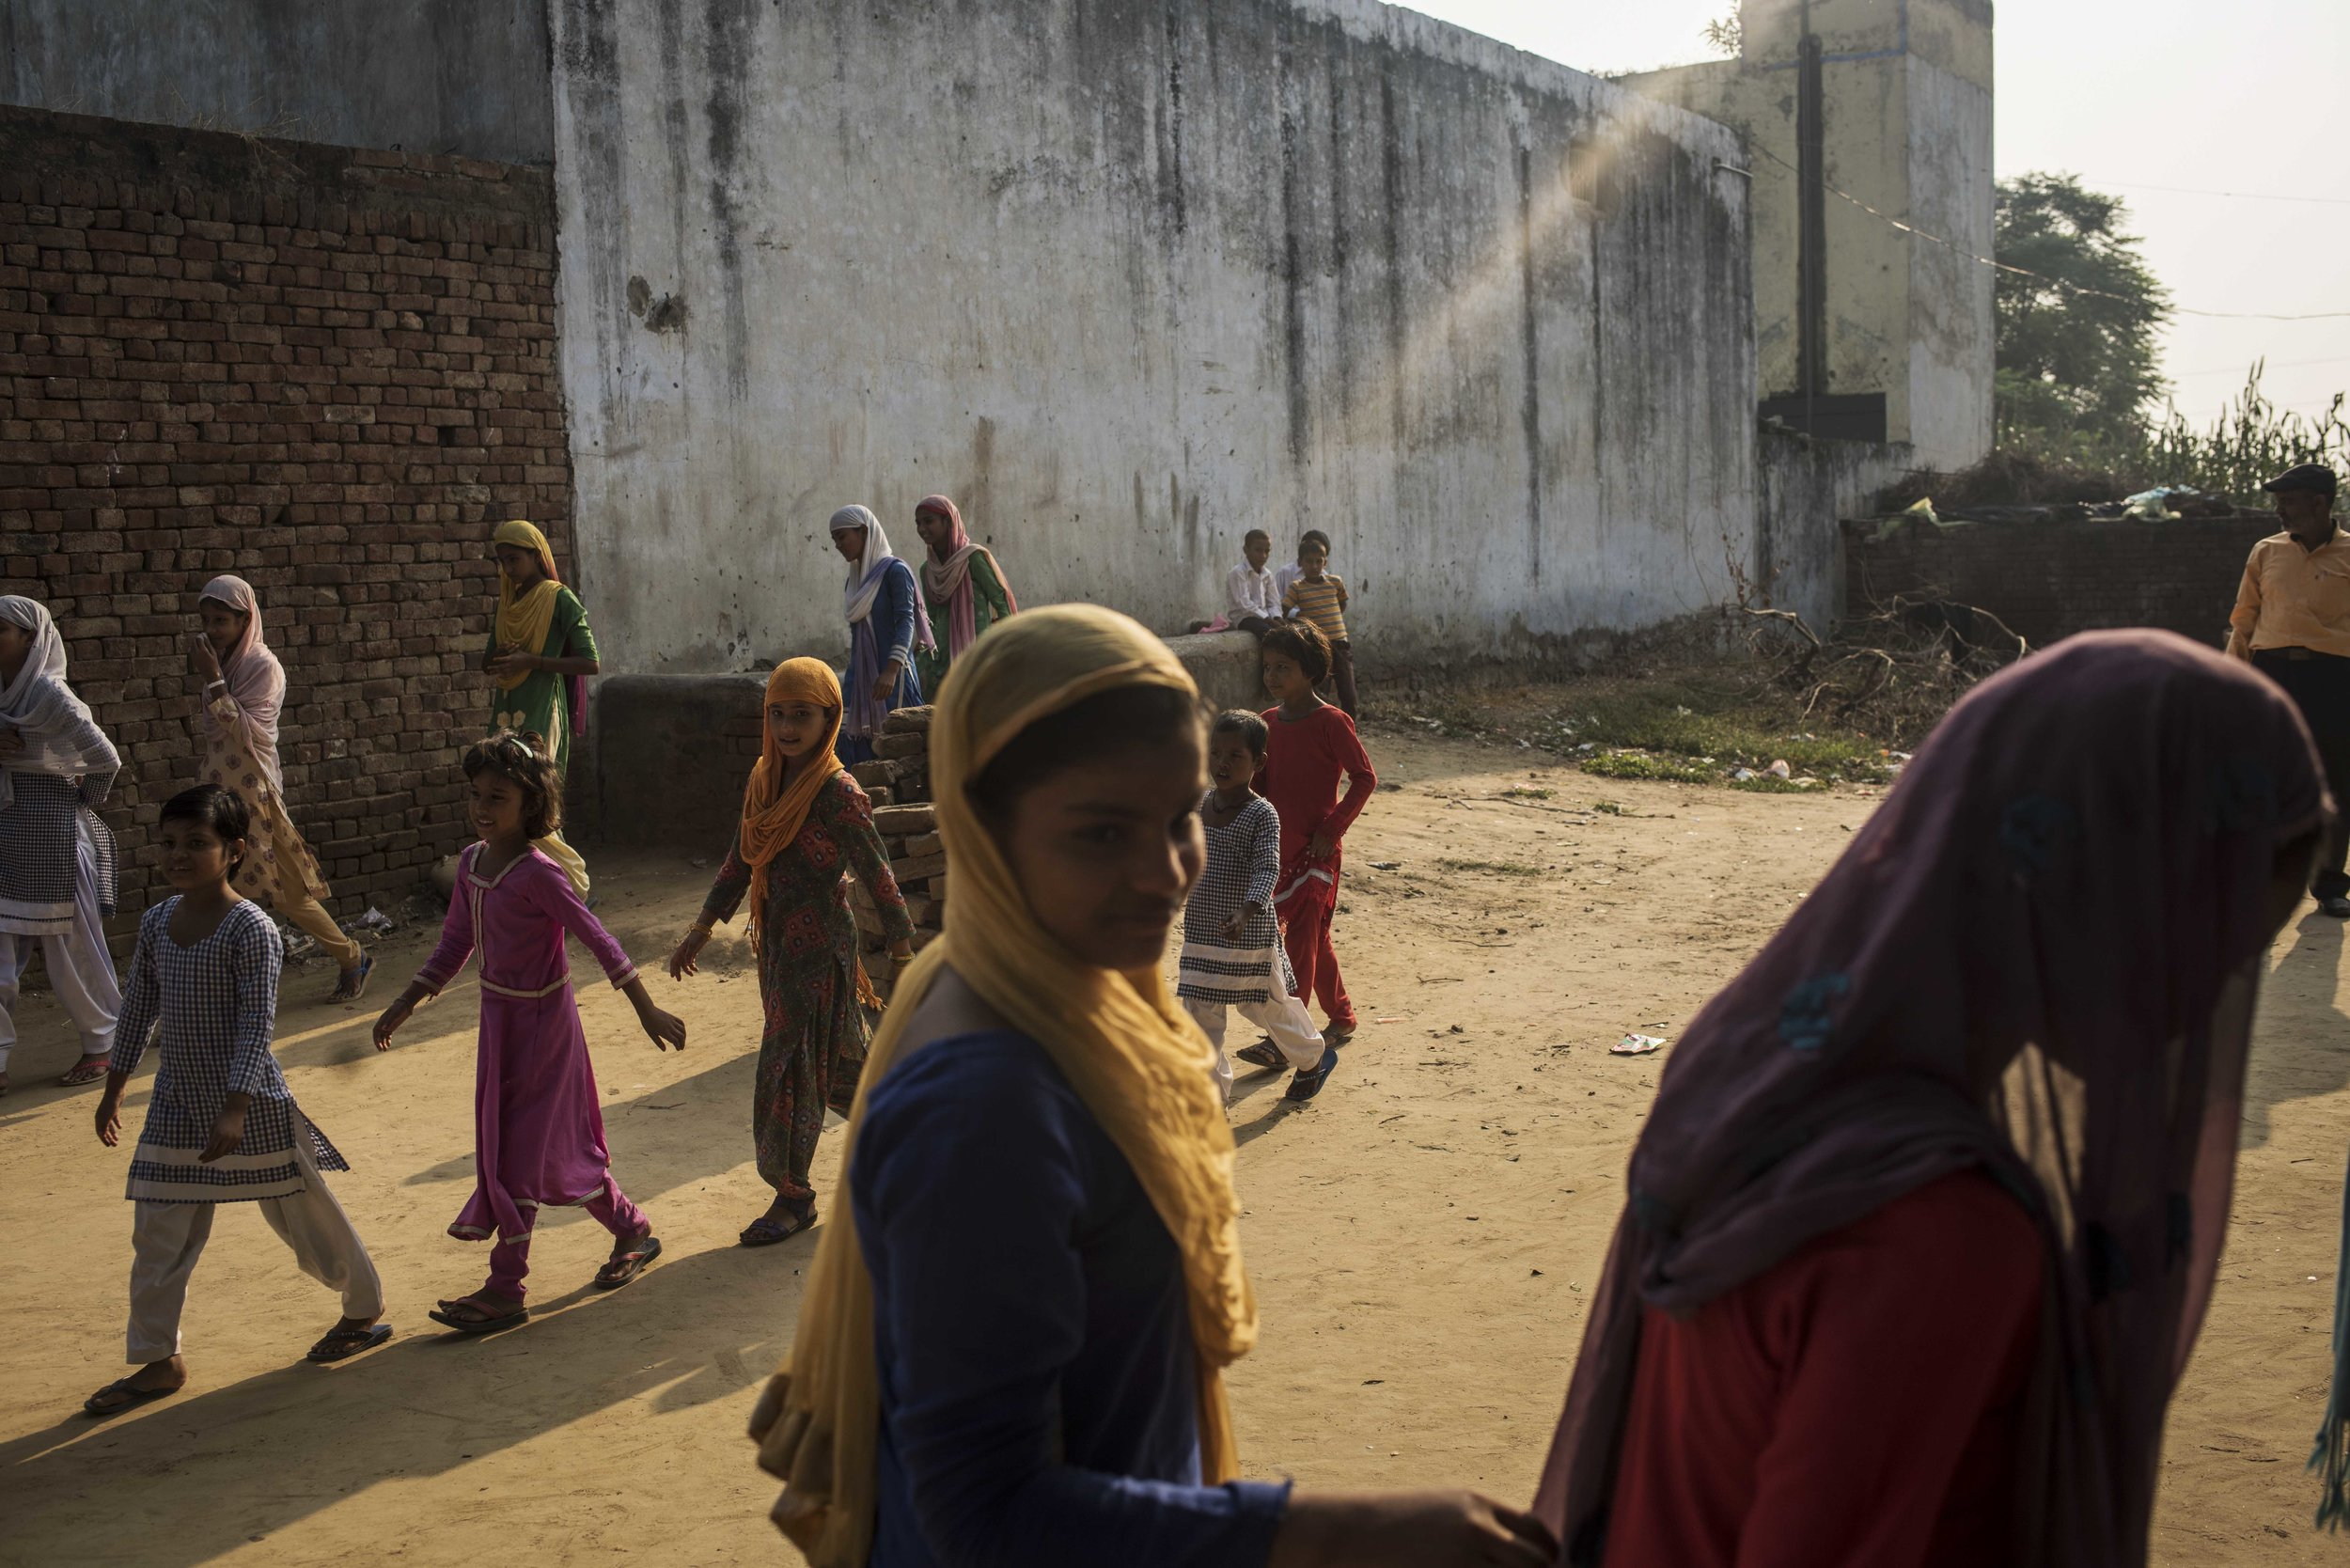 India, Uttar Pradesh, 25 September 2016, In a village in Uttar Pradesh, girls line up for school. The school doesn't have a working toilet and so the students must defecate in the nearby fields.